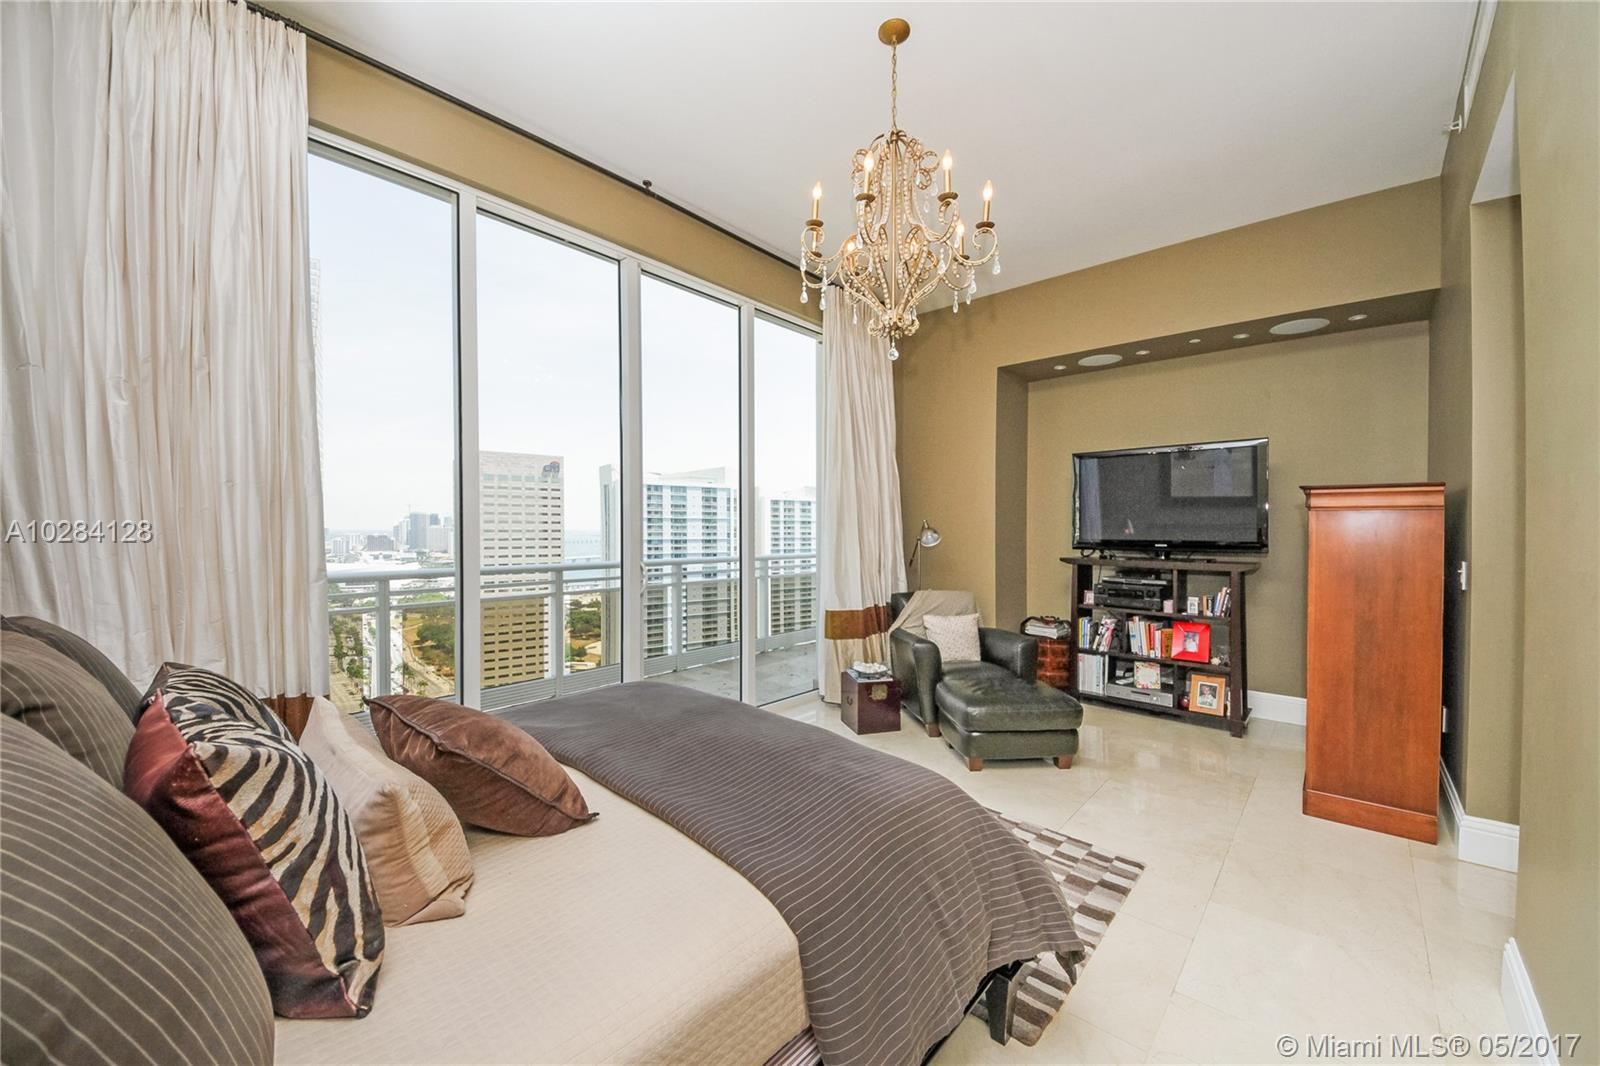 901 Brickell key blvd-PH3705 miami--fl-33131-a10284128-Pic25